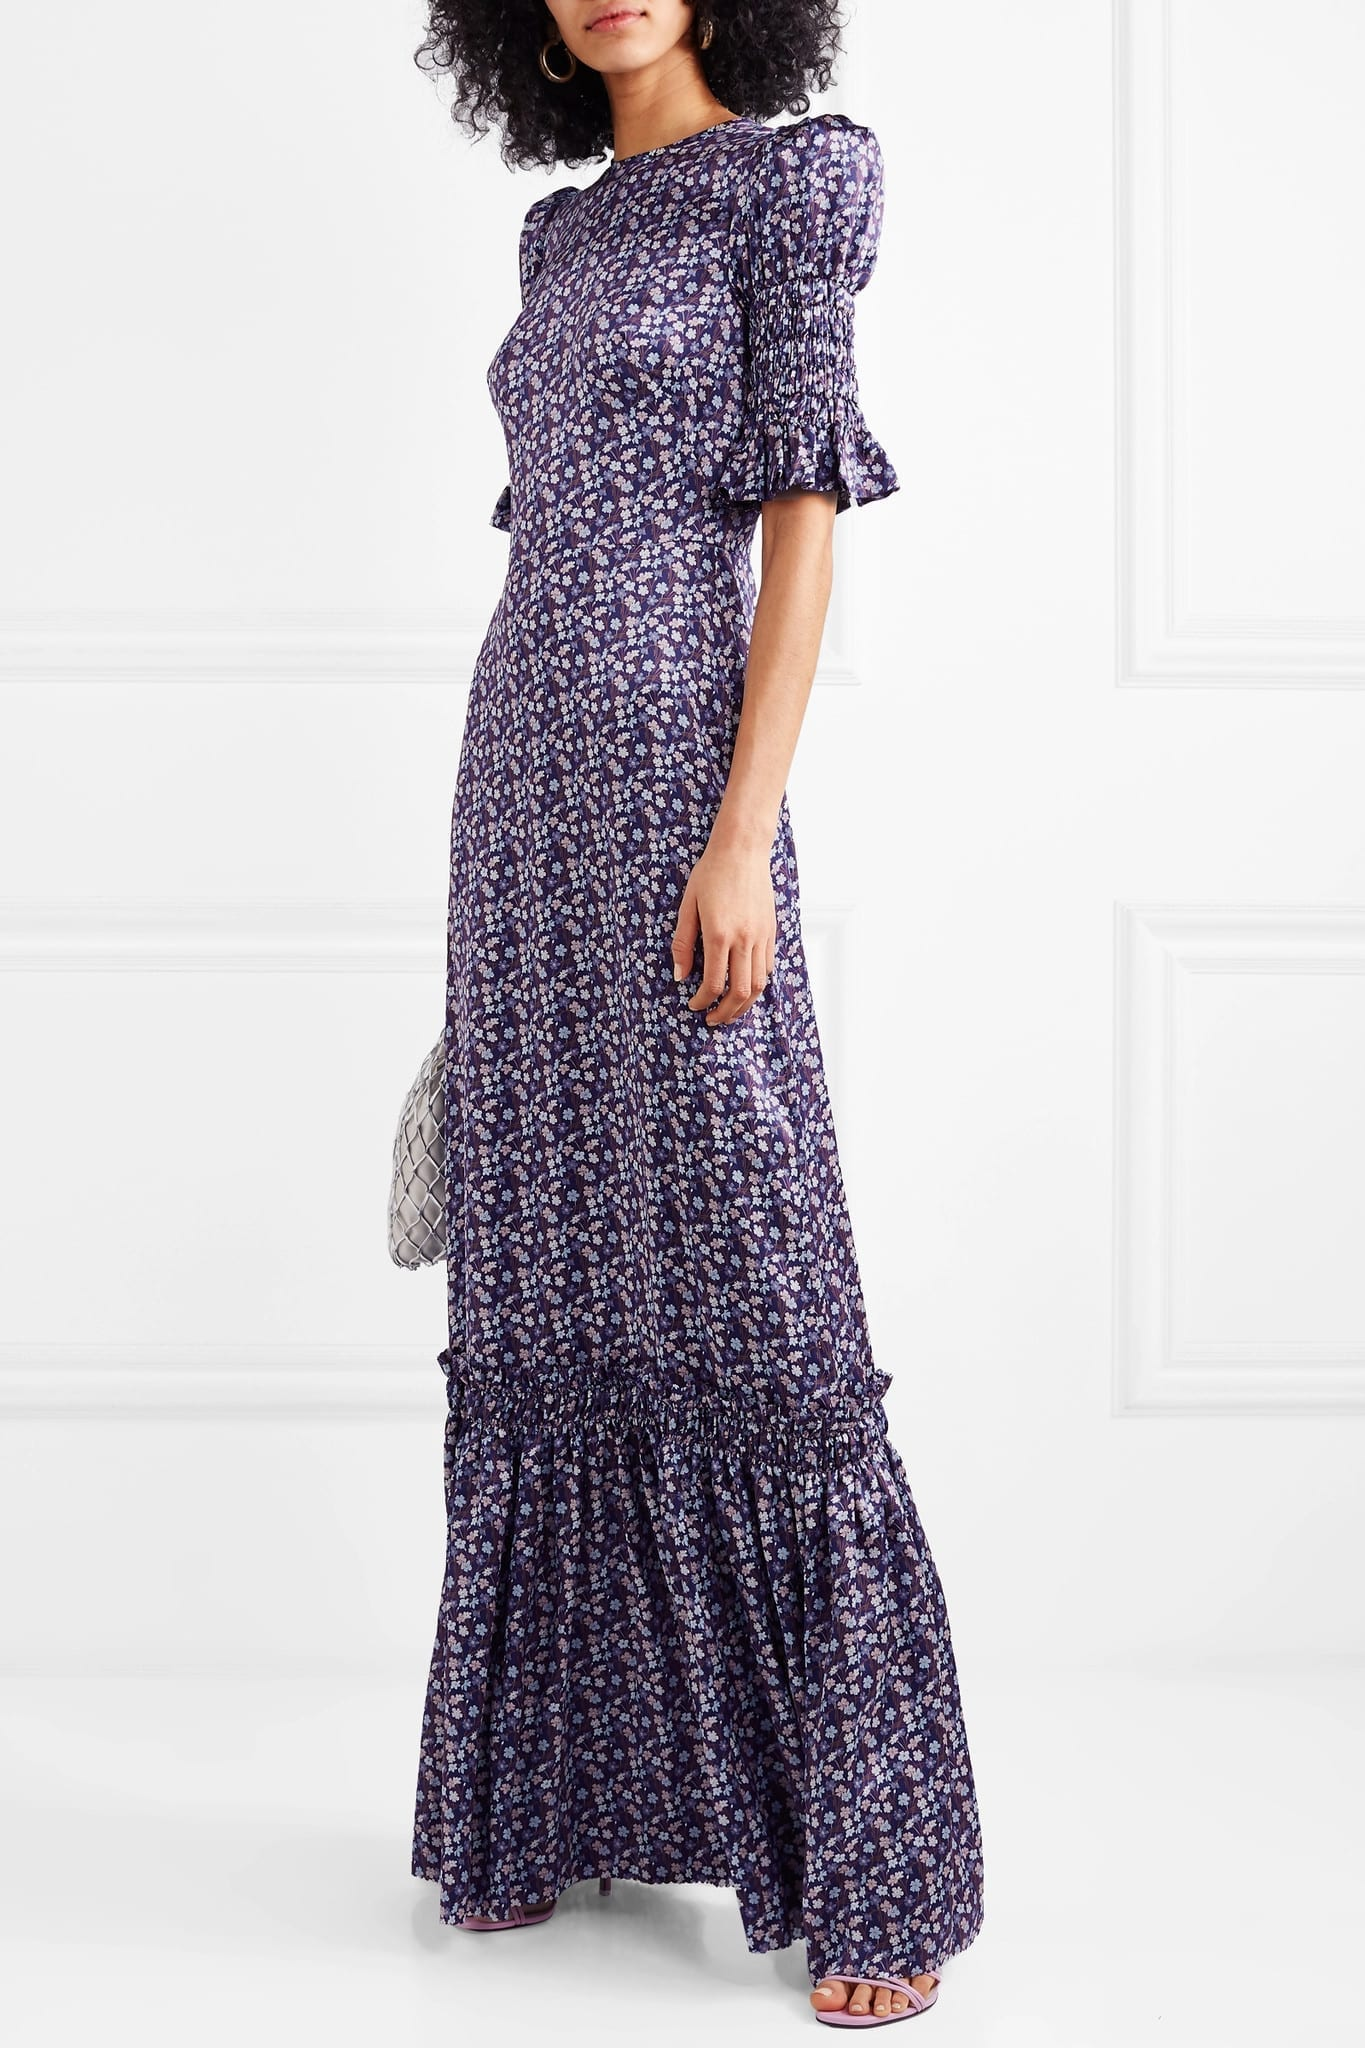 THE VAMPIRE'S WIFE Ruffled Floral-Print Silk-Satin Maxi Purple Dress